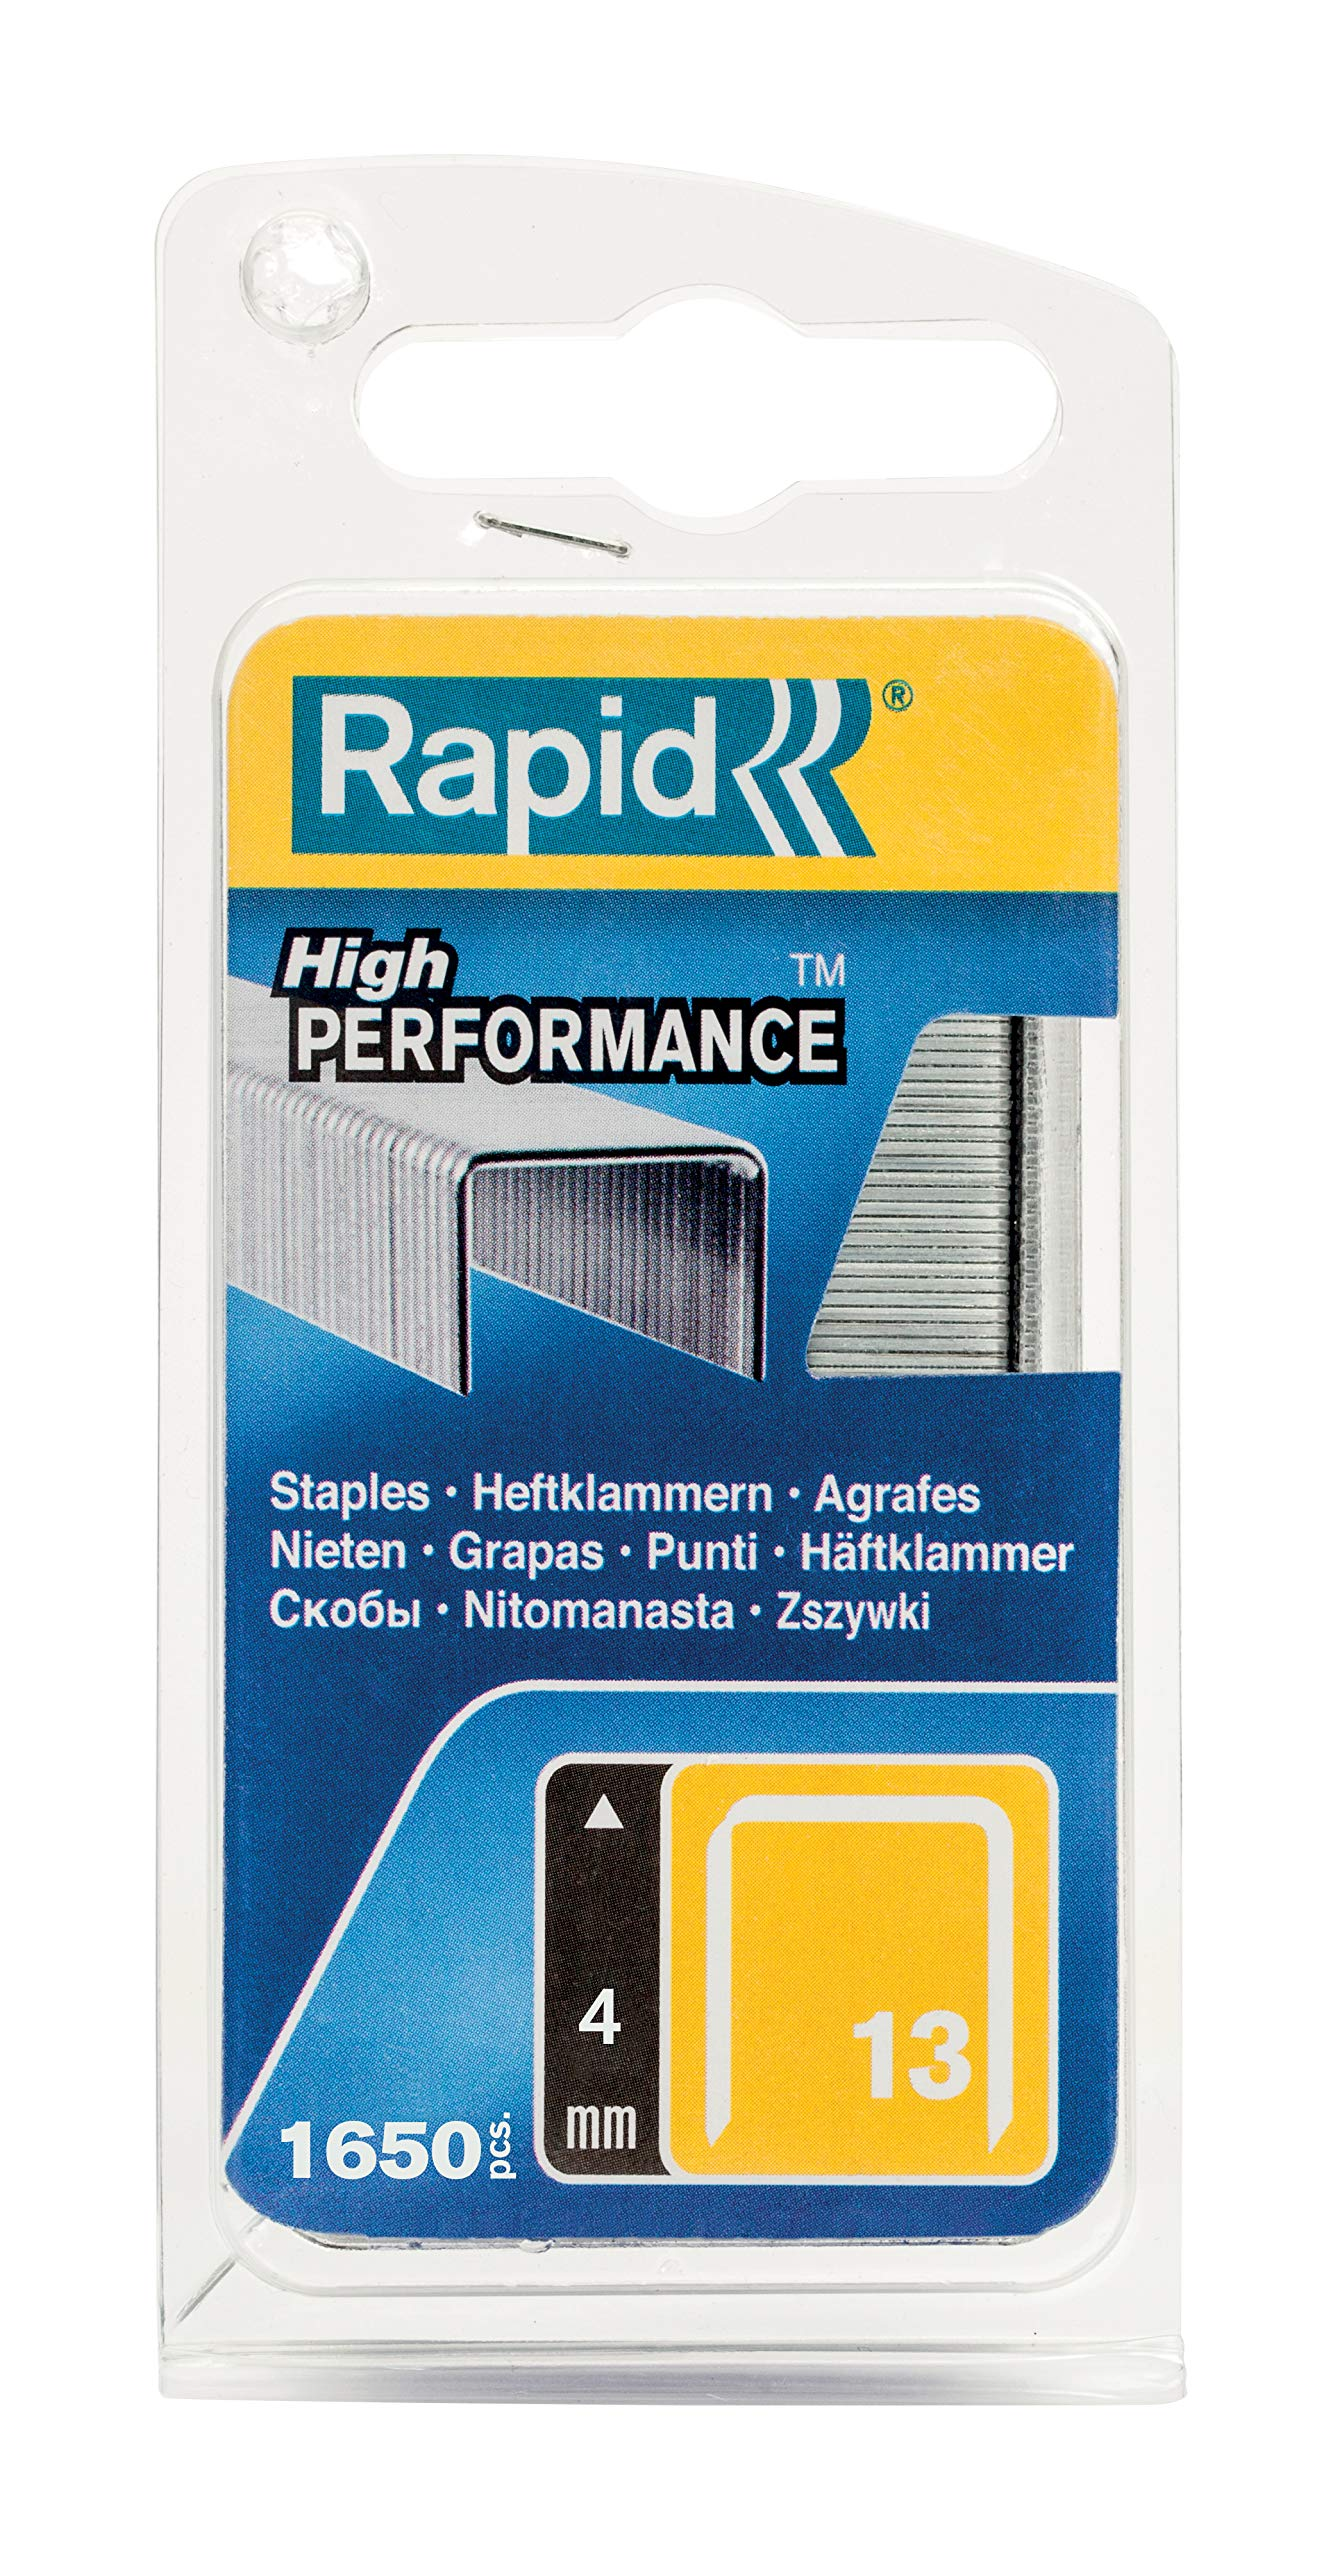 Rapid High Performance Staples, No.13, Leg Length 4 mm, 40109518-1650 Pieces